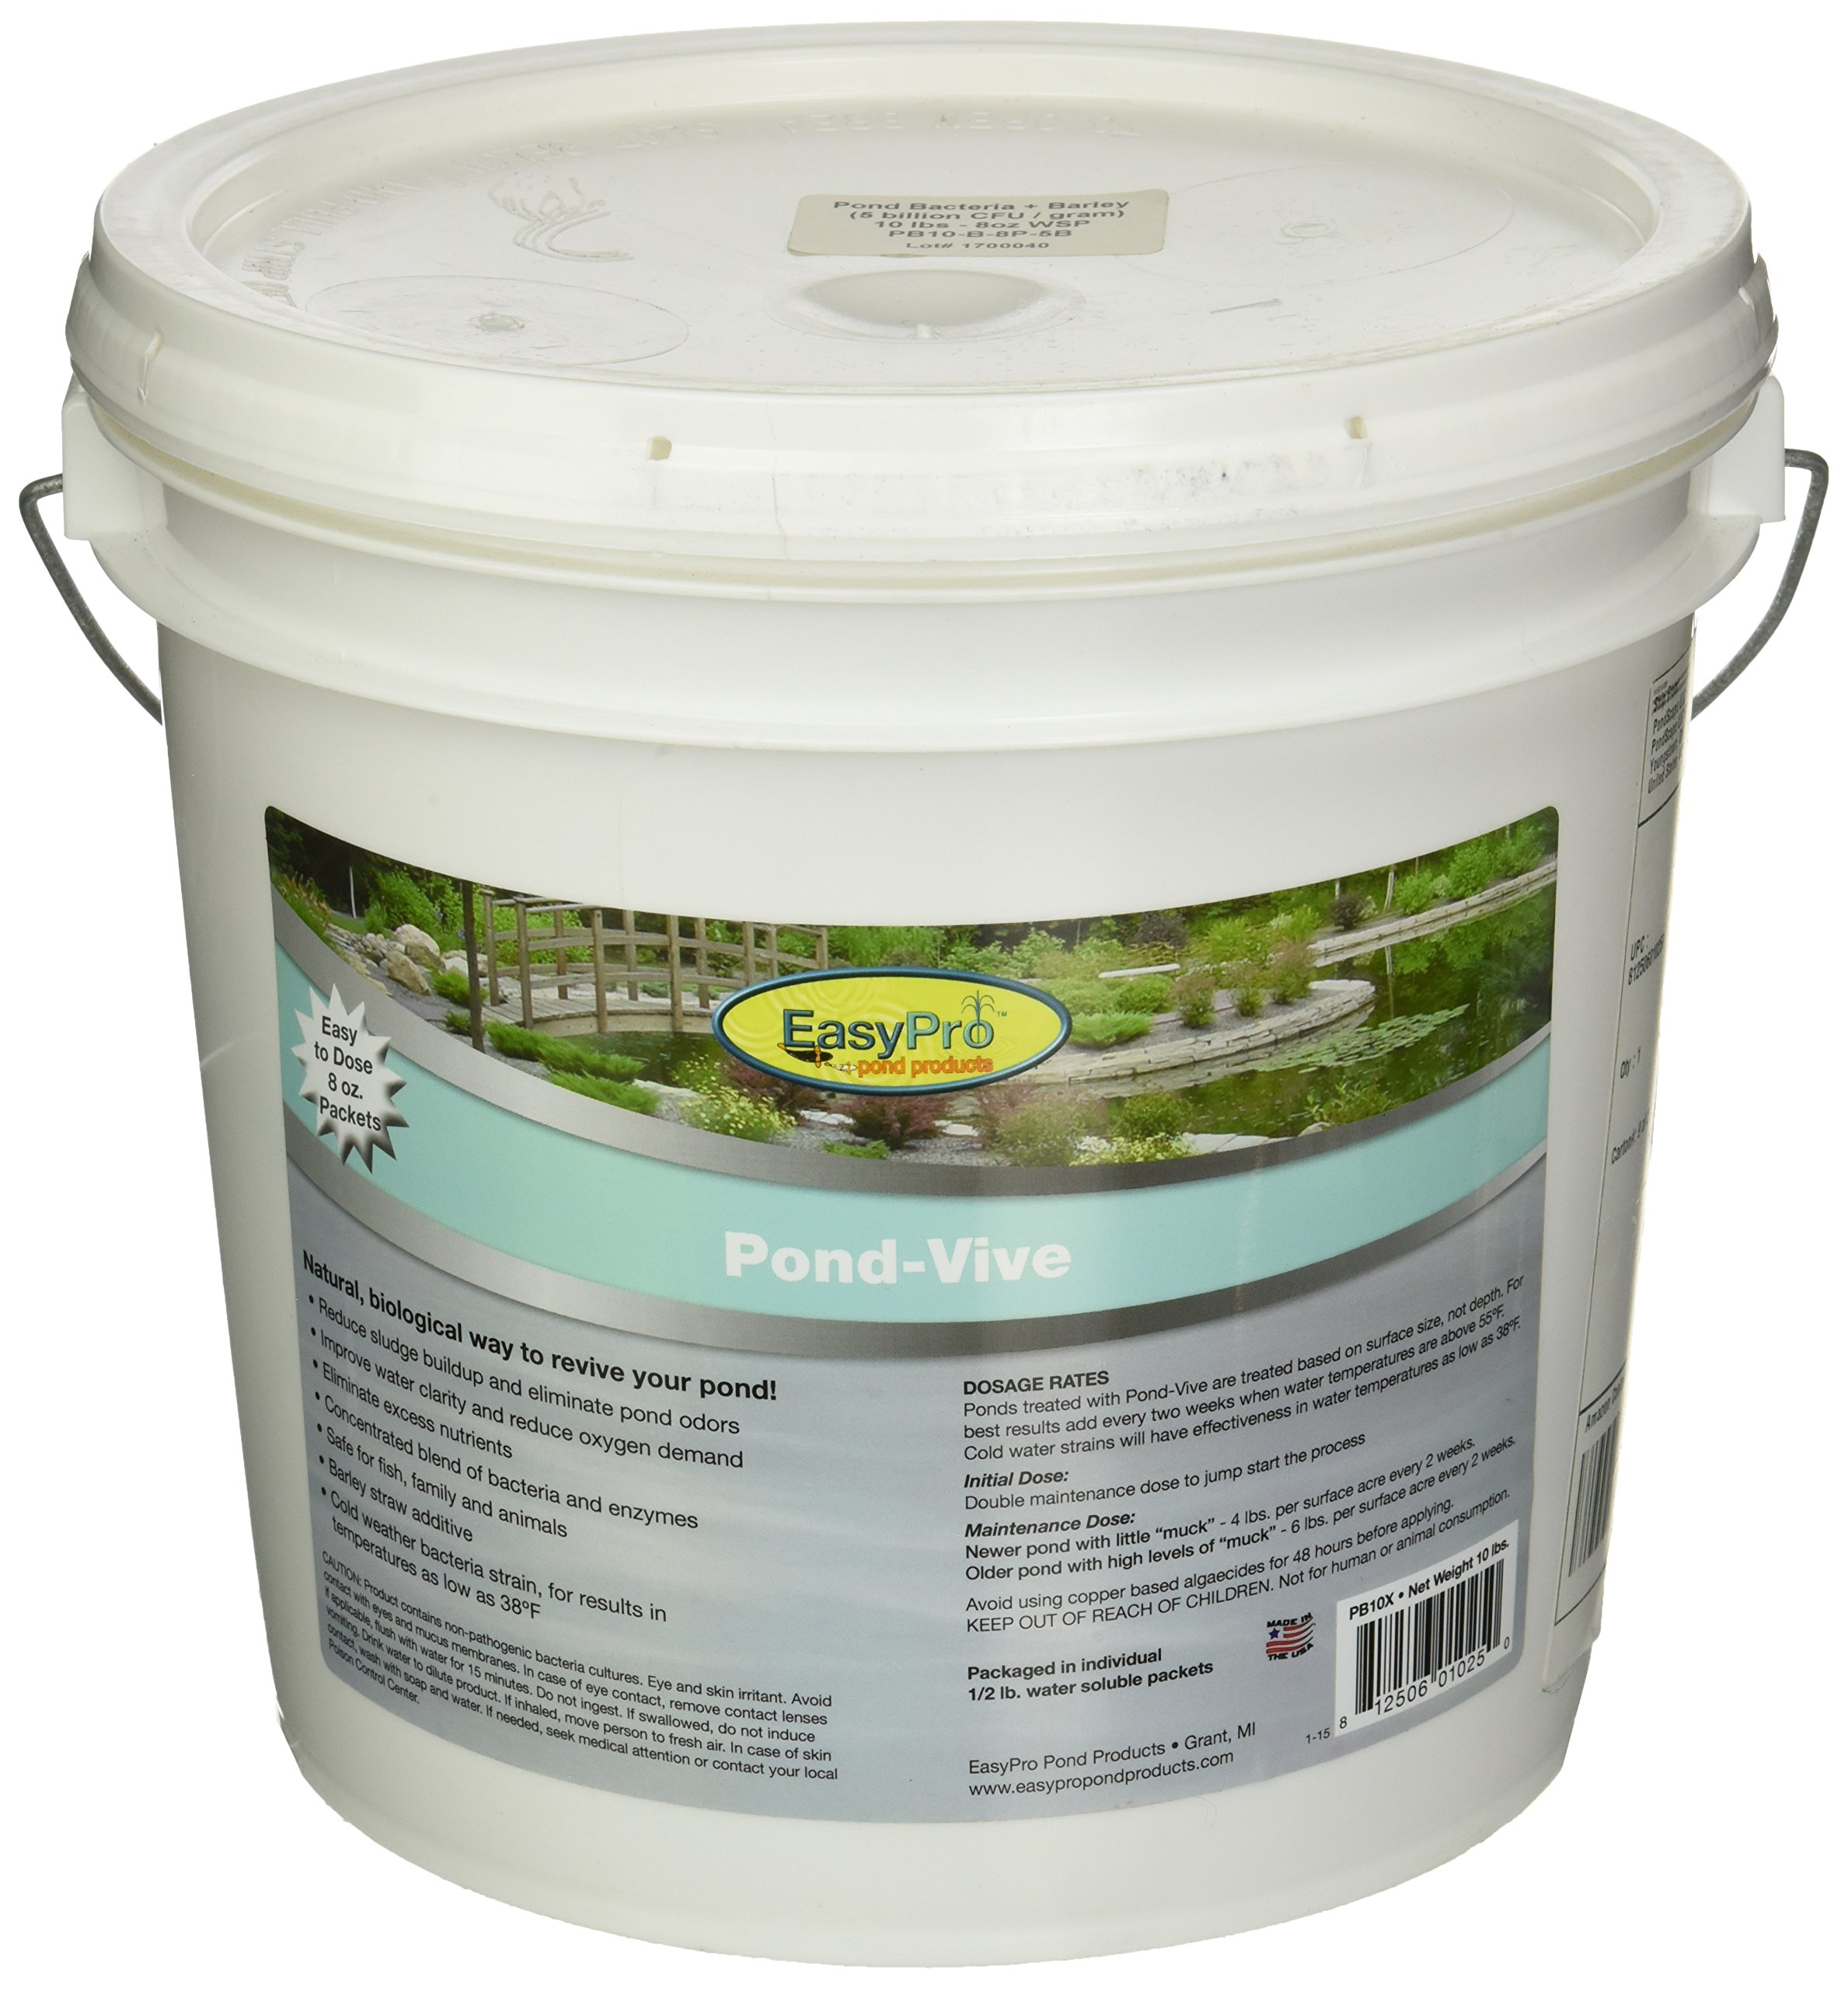 EasyPro Pond Products PB10X 20 Count Pond-Vive Bacteria X Water Soluble Supplement, 8 oz by EasyPro Pond Products